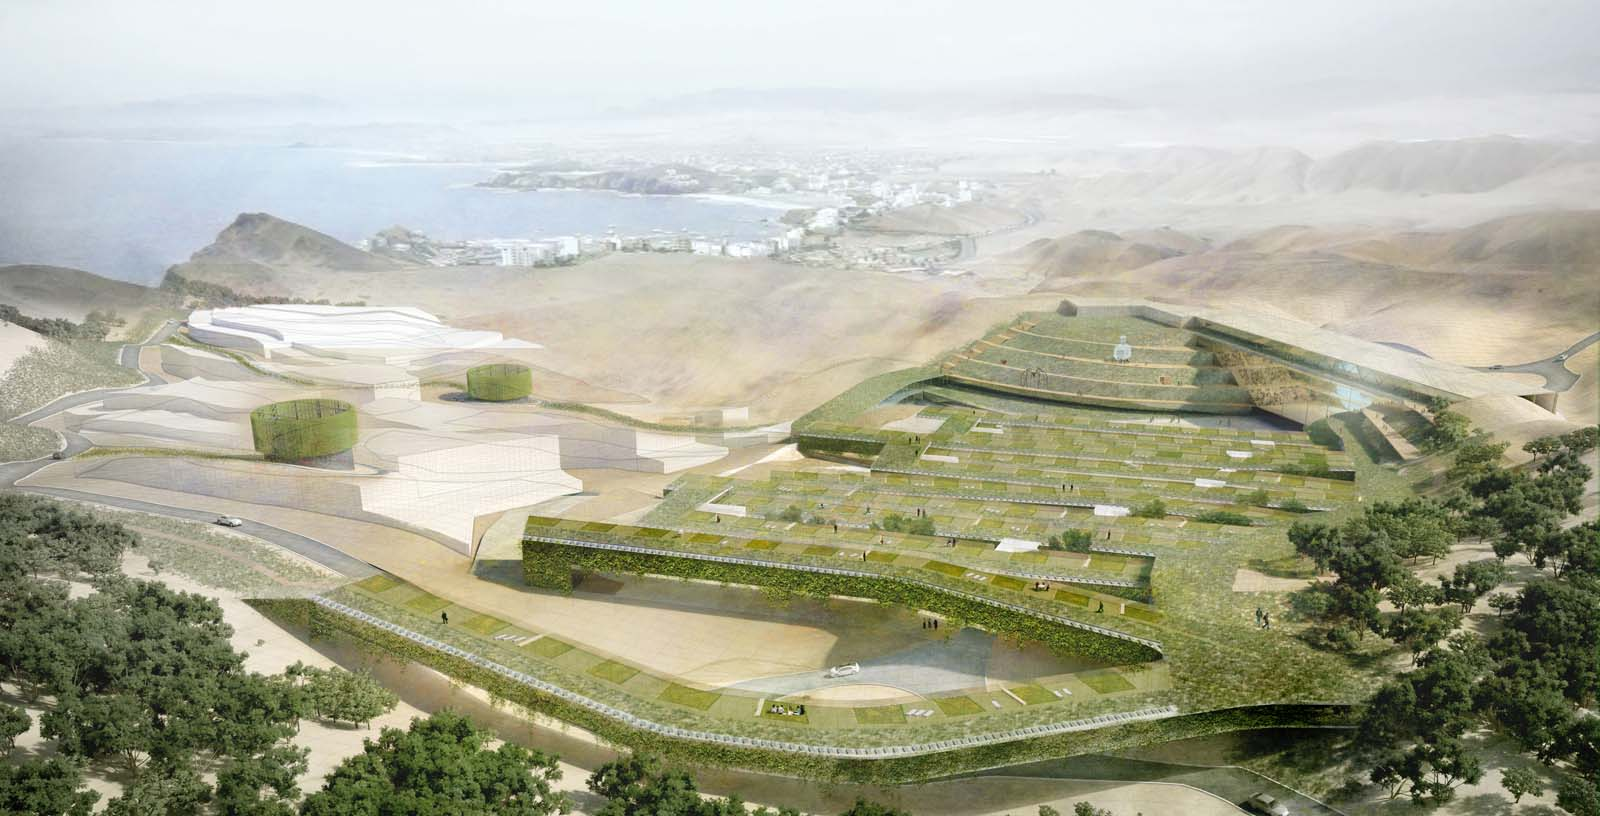 Master_Plan_Scientific_Park_01_Architecture_IDOM_computer_graphics_Andreia_Faley_and_Poliedro